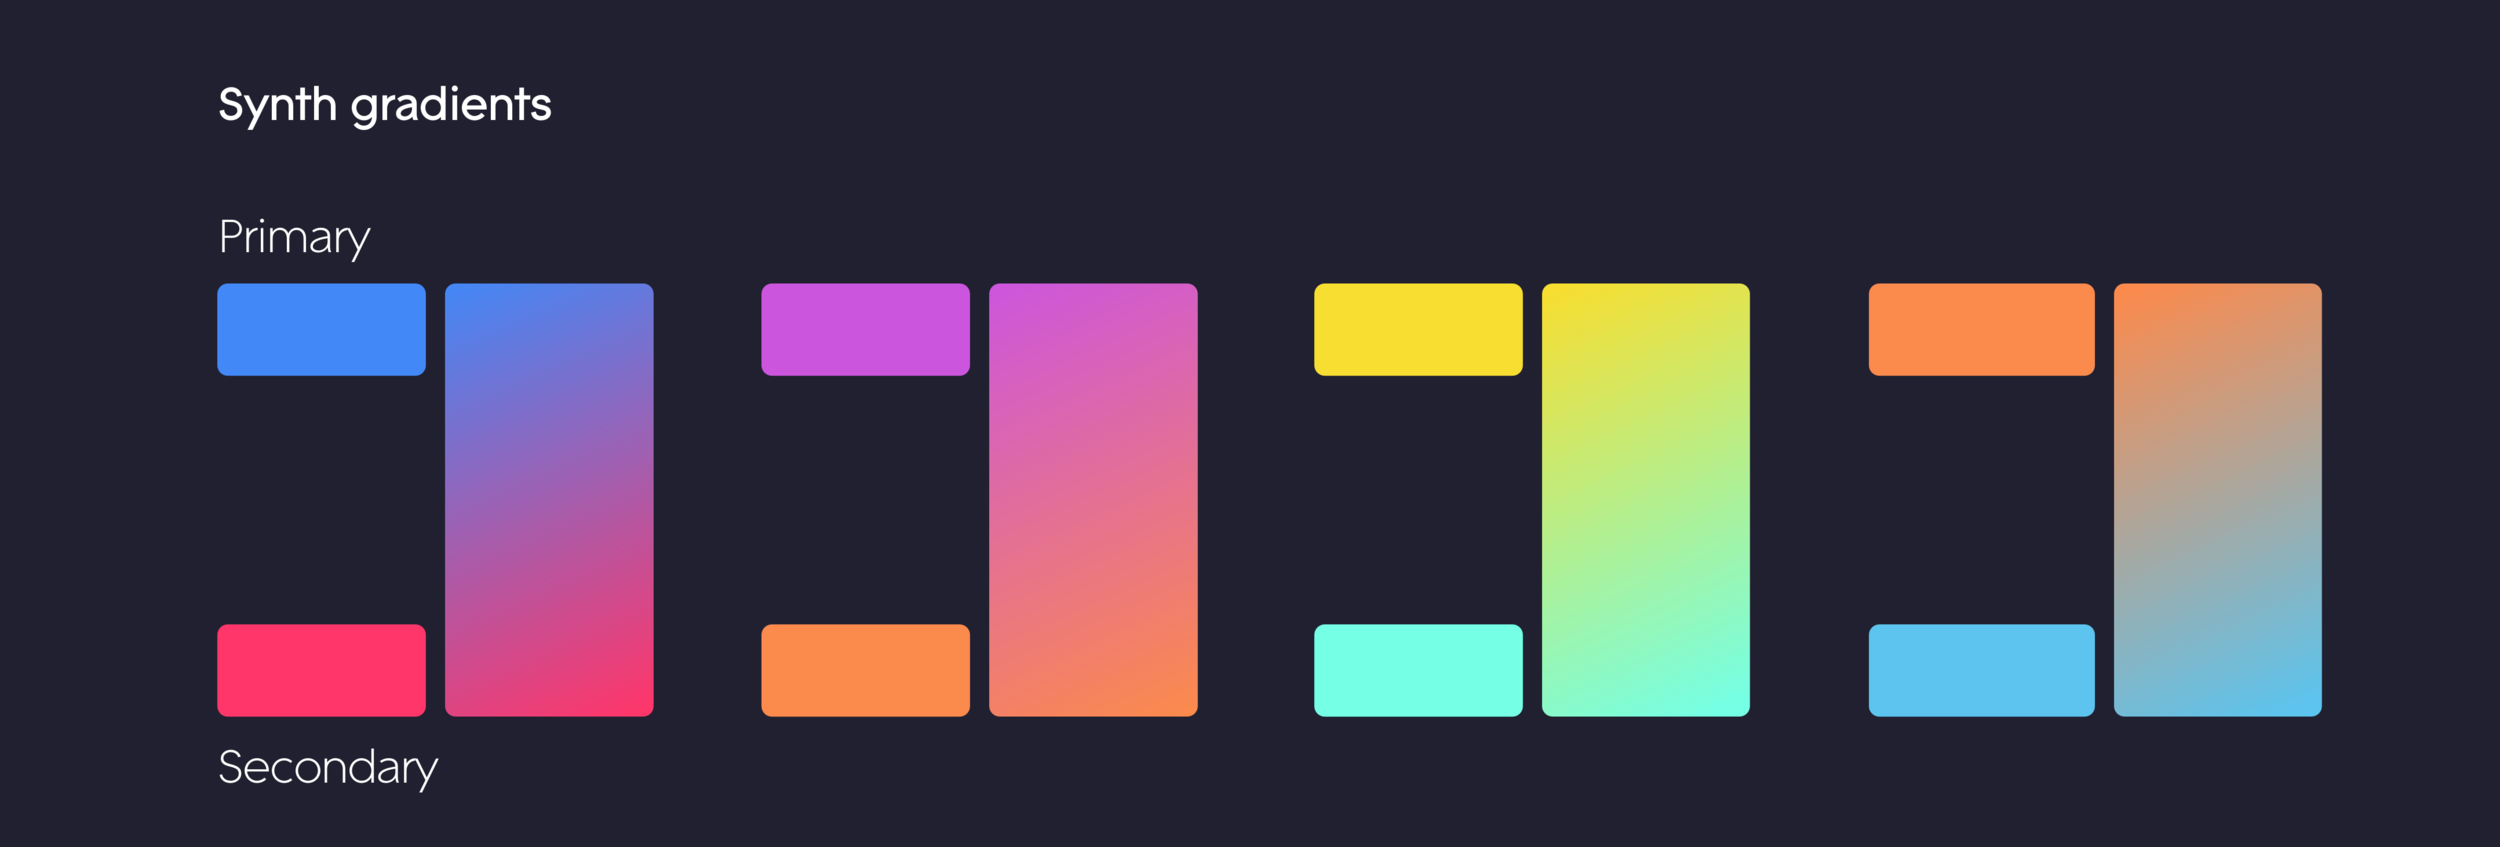 Create_synth_gradient-examples.png